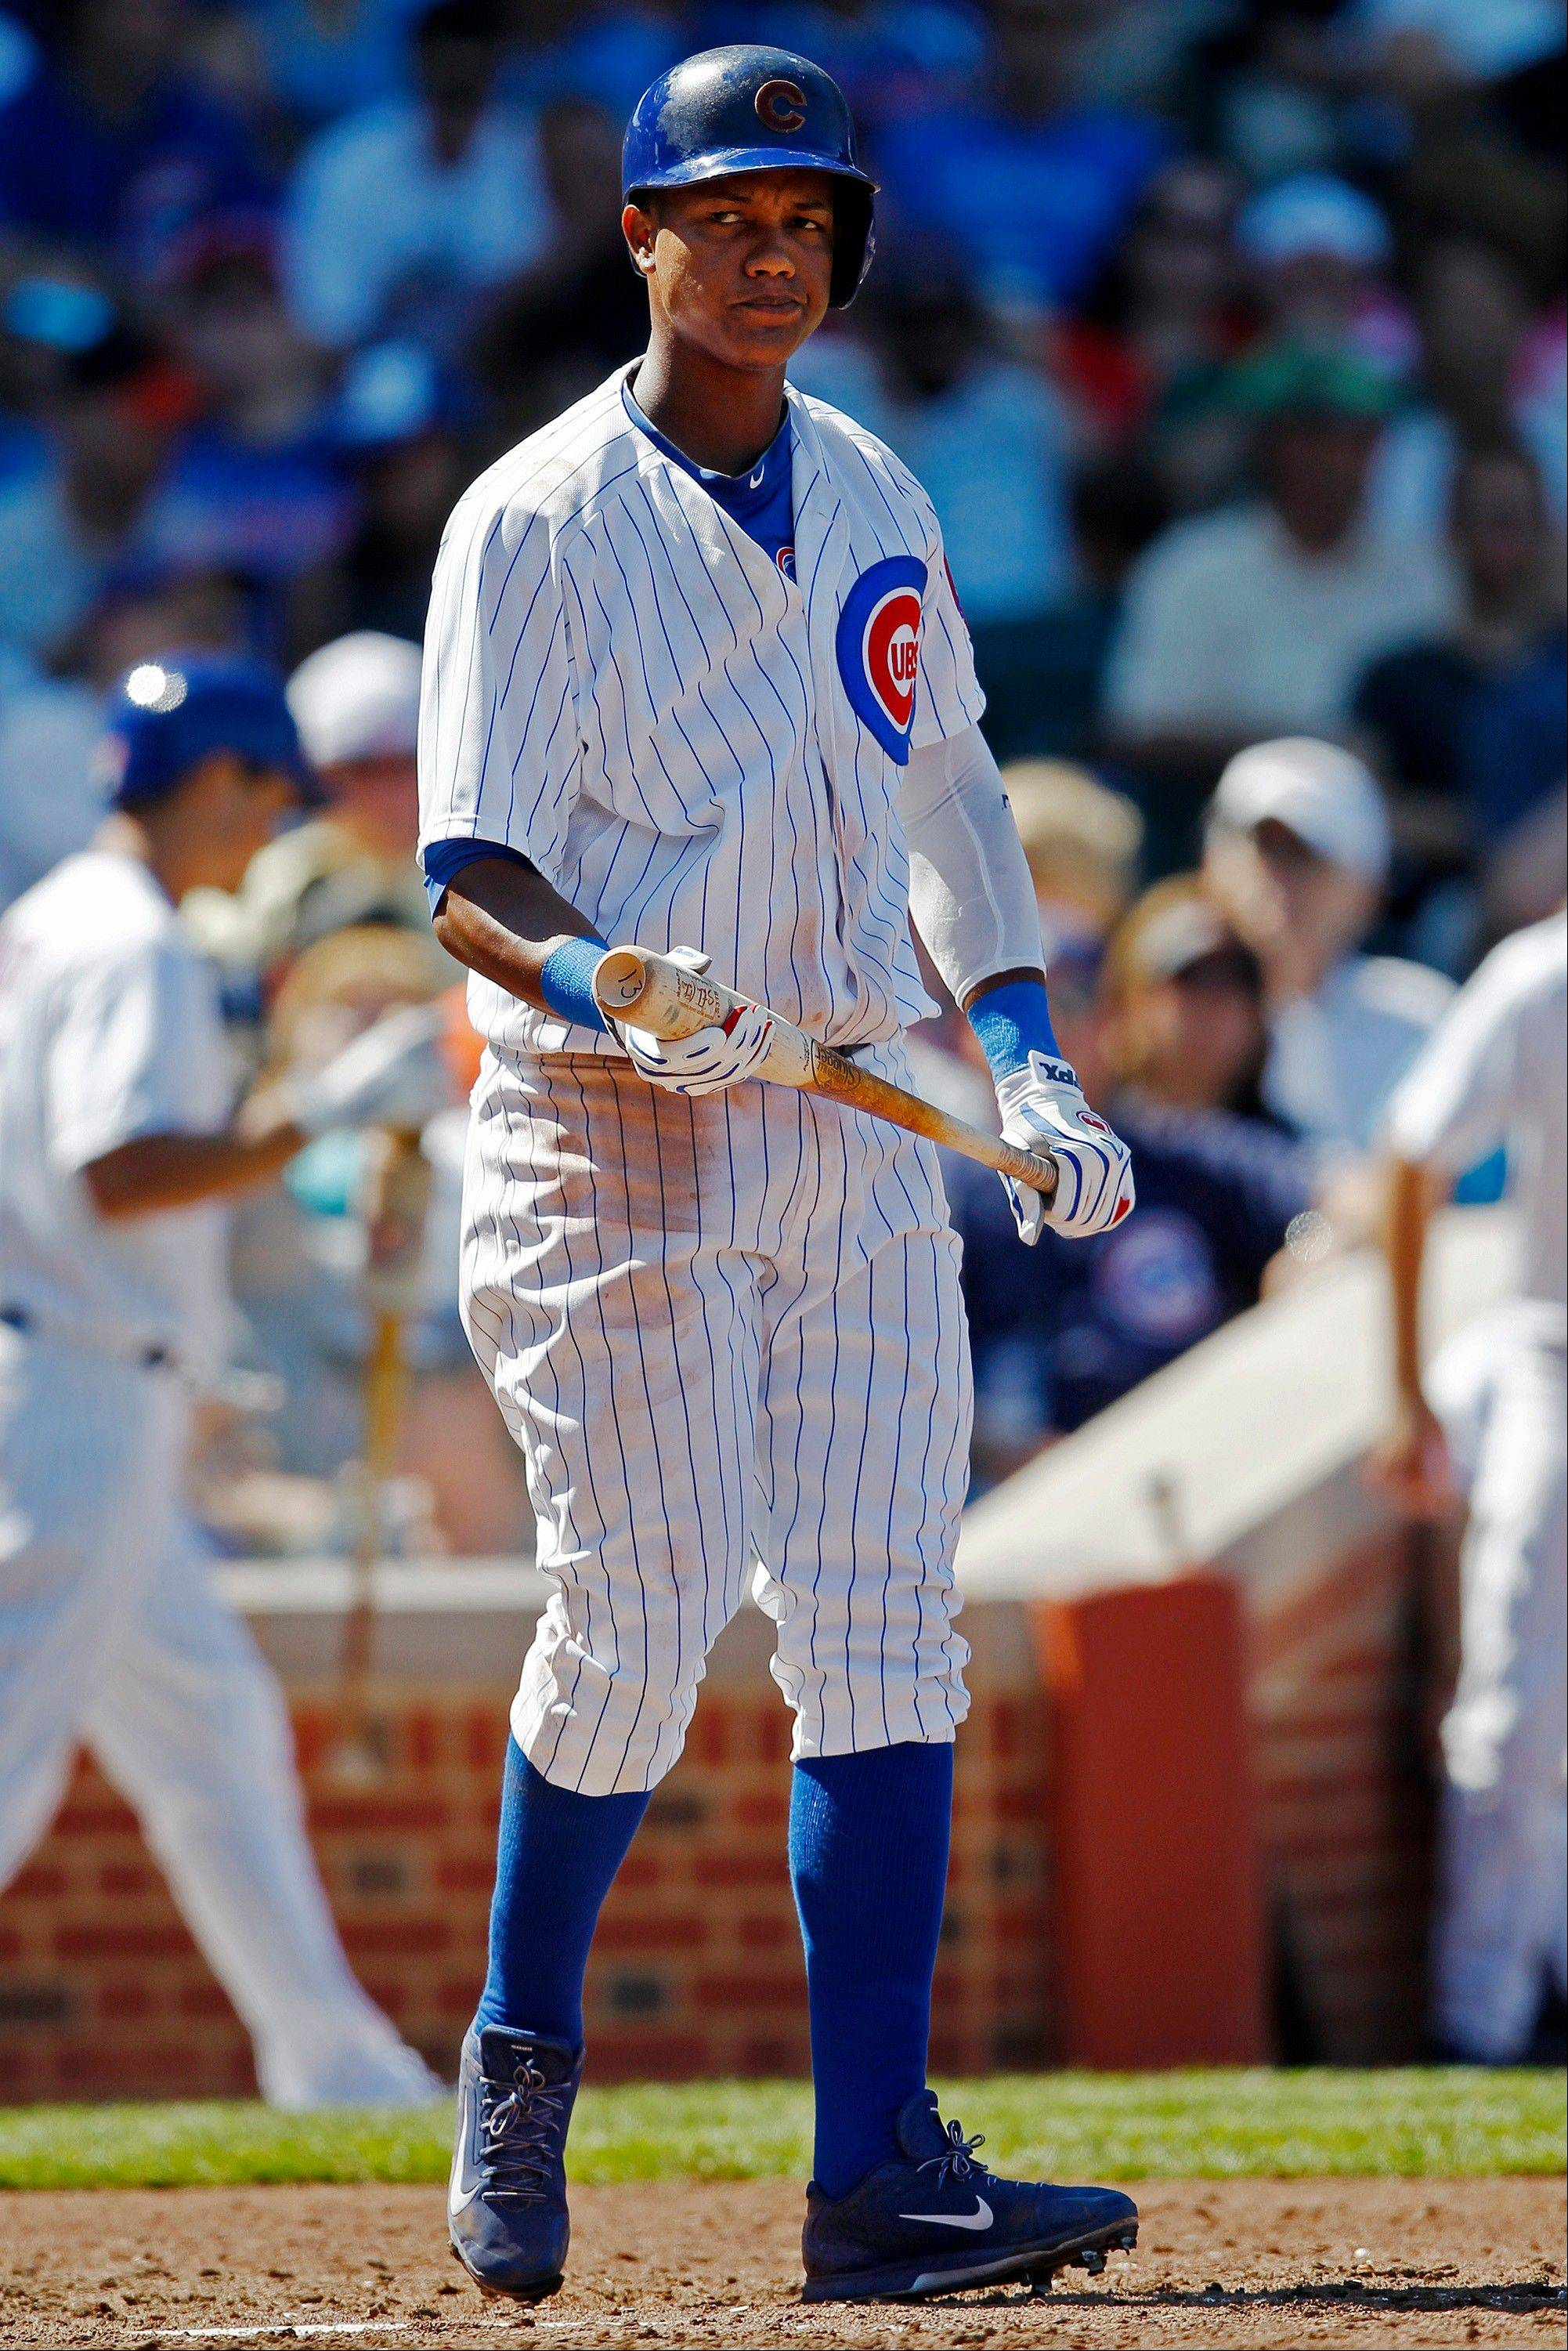 Starlin Castro reacts after striking out during a game last year against the Cardinals. The Cubs are hoping Castro can improve upon his .245 batting average and .284 on-base percentage from 2013.